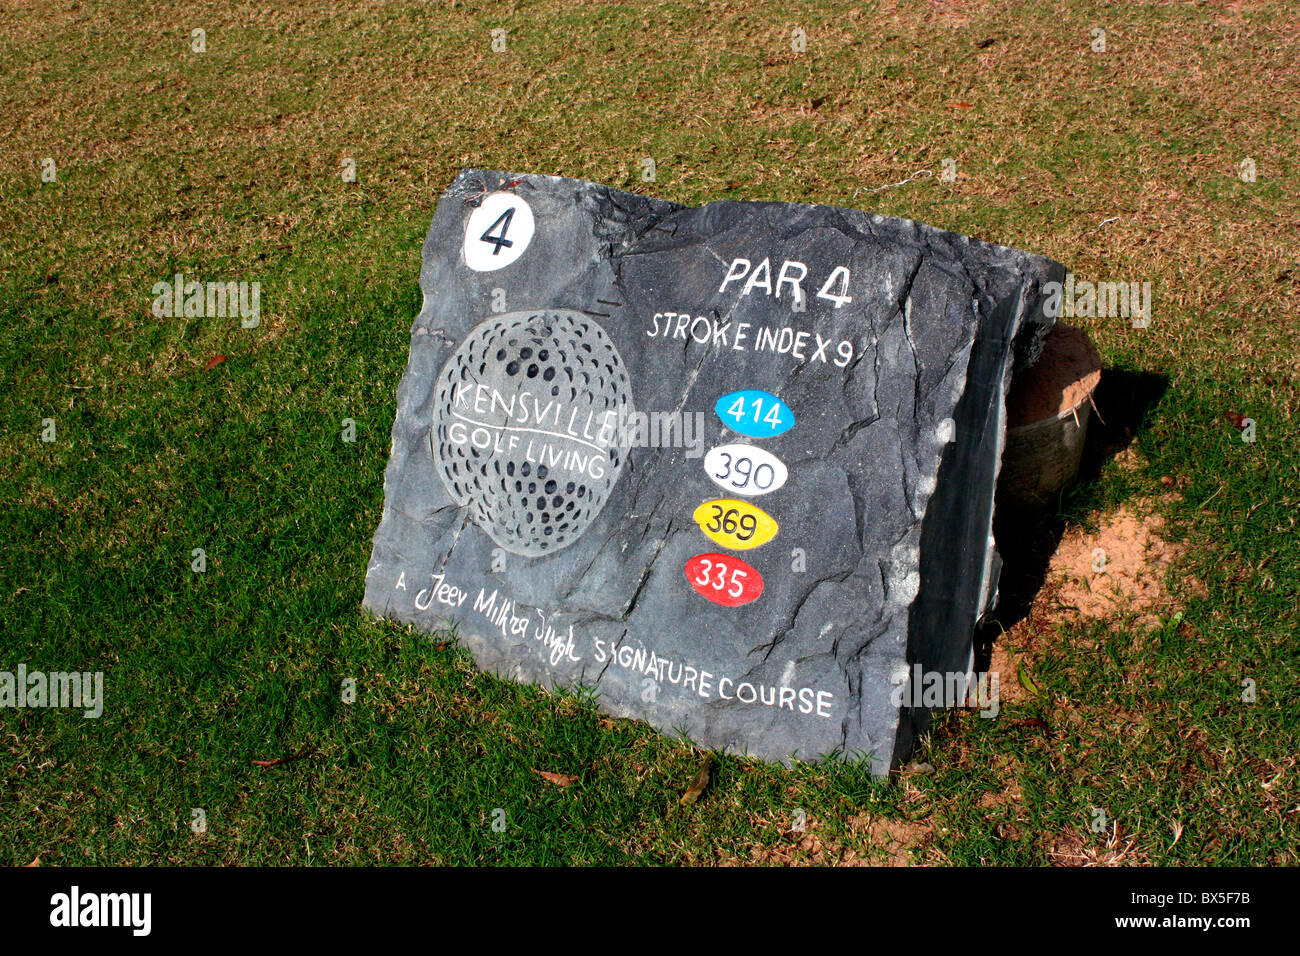 Hole information board - Stock Image